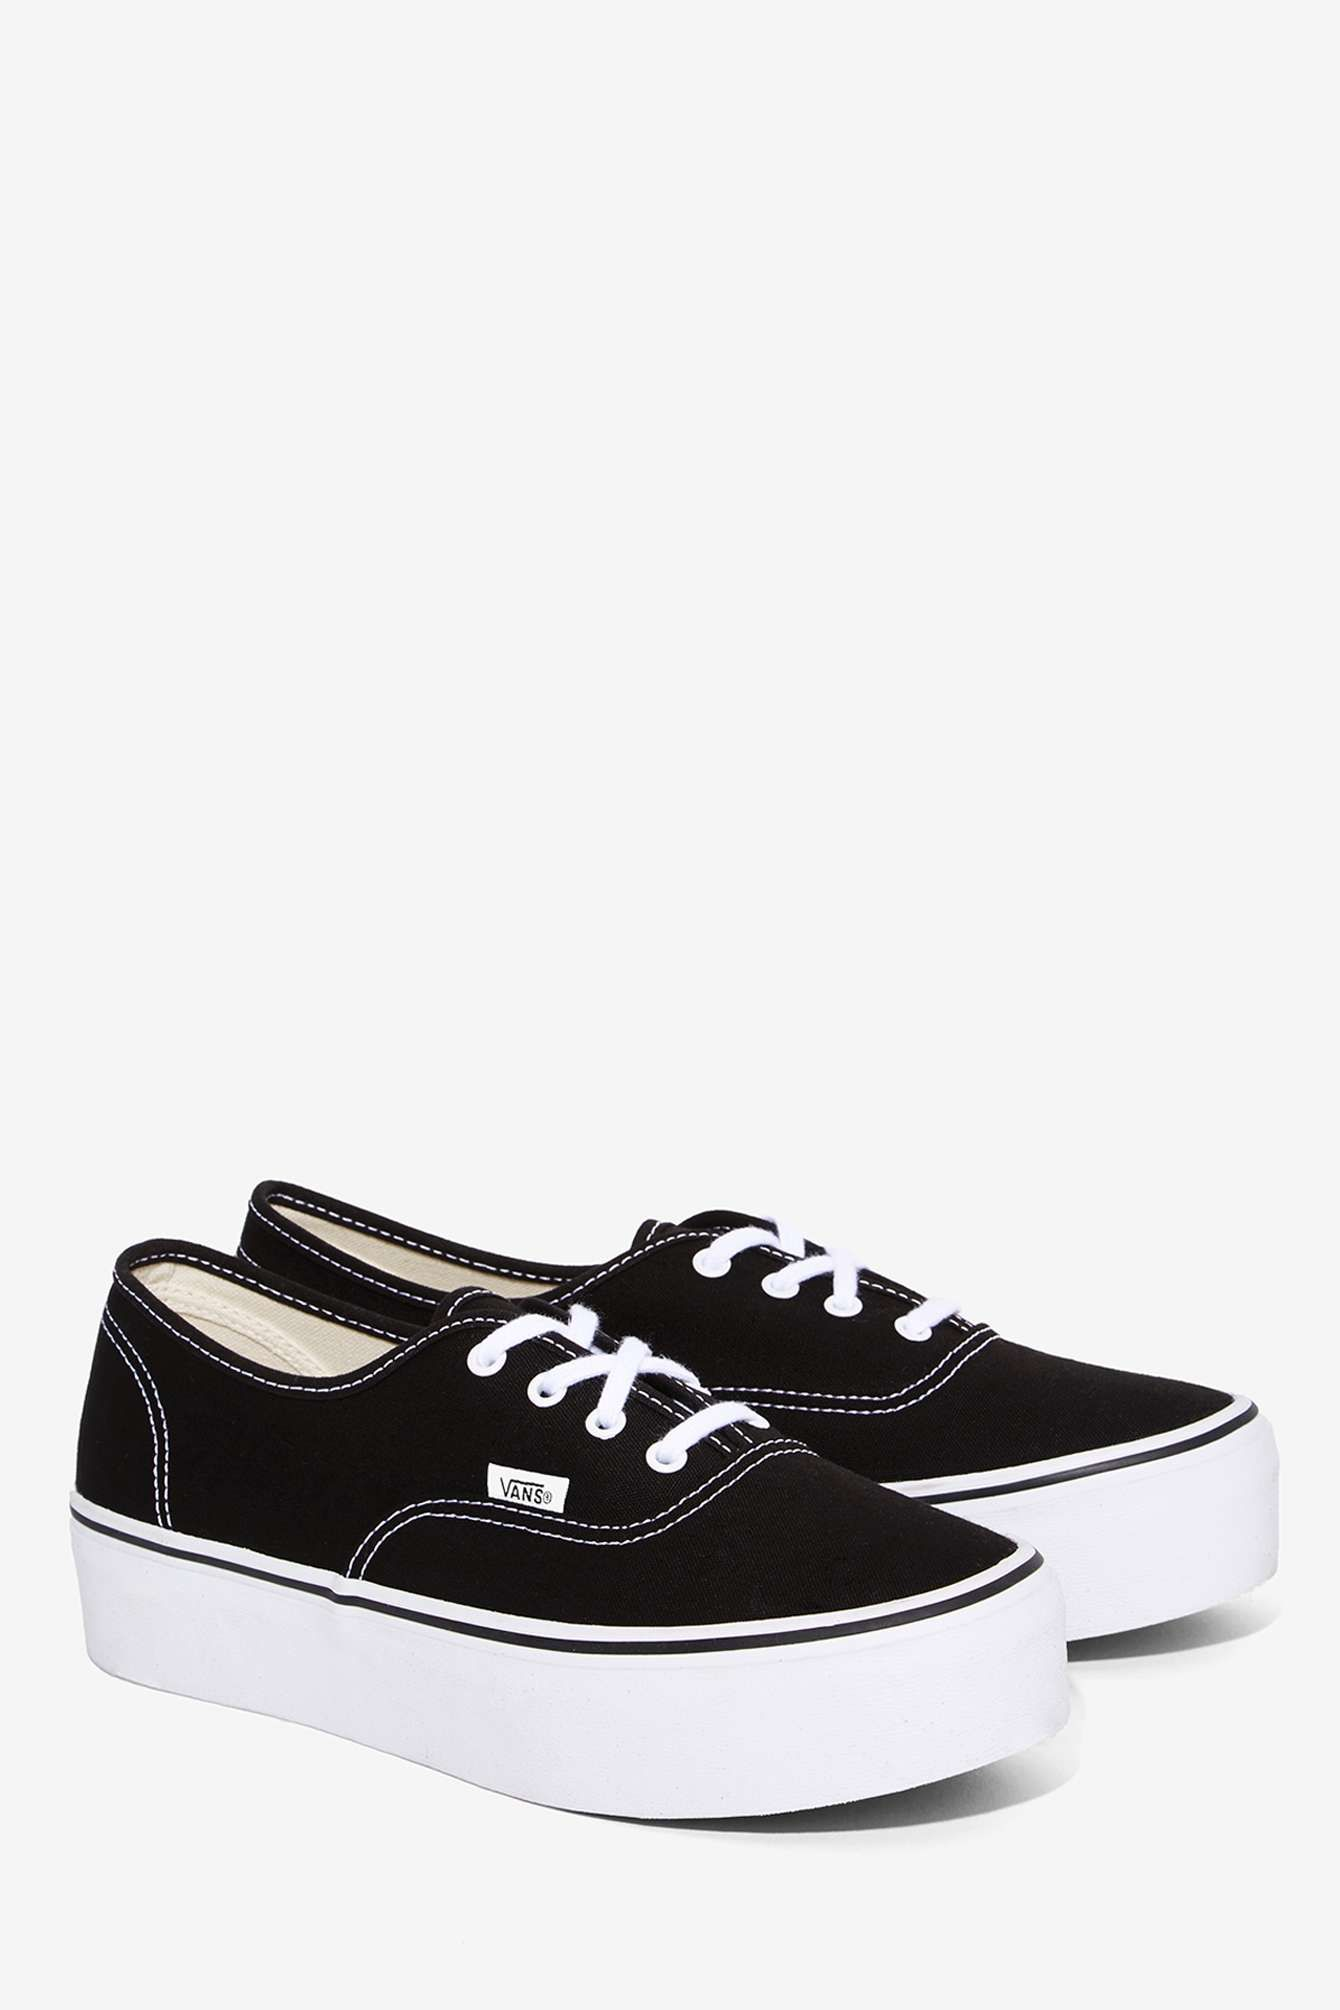 eb0f9a8343b Vans Authentic Platform Sneaker - Black